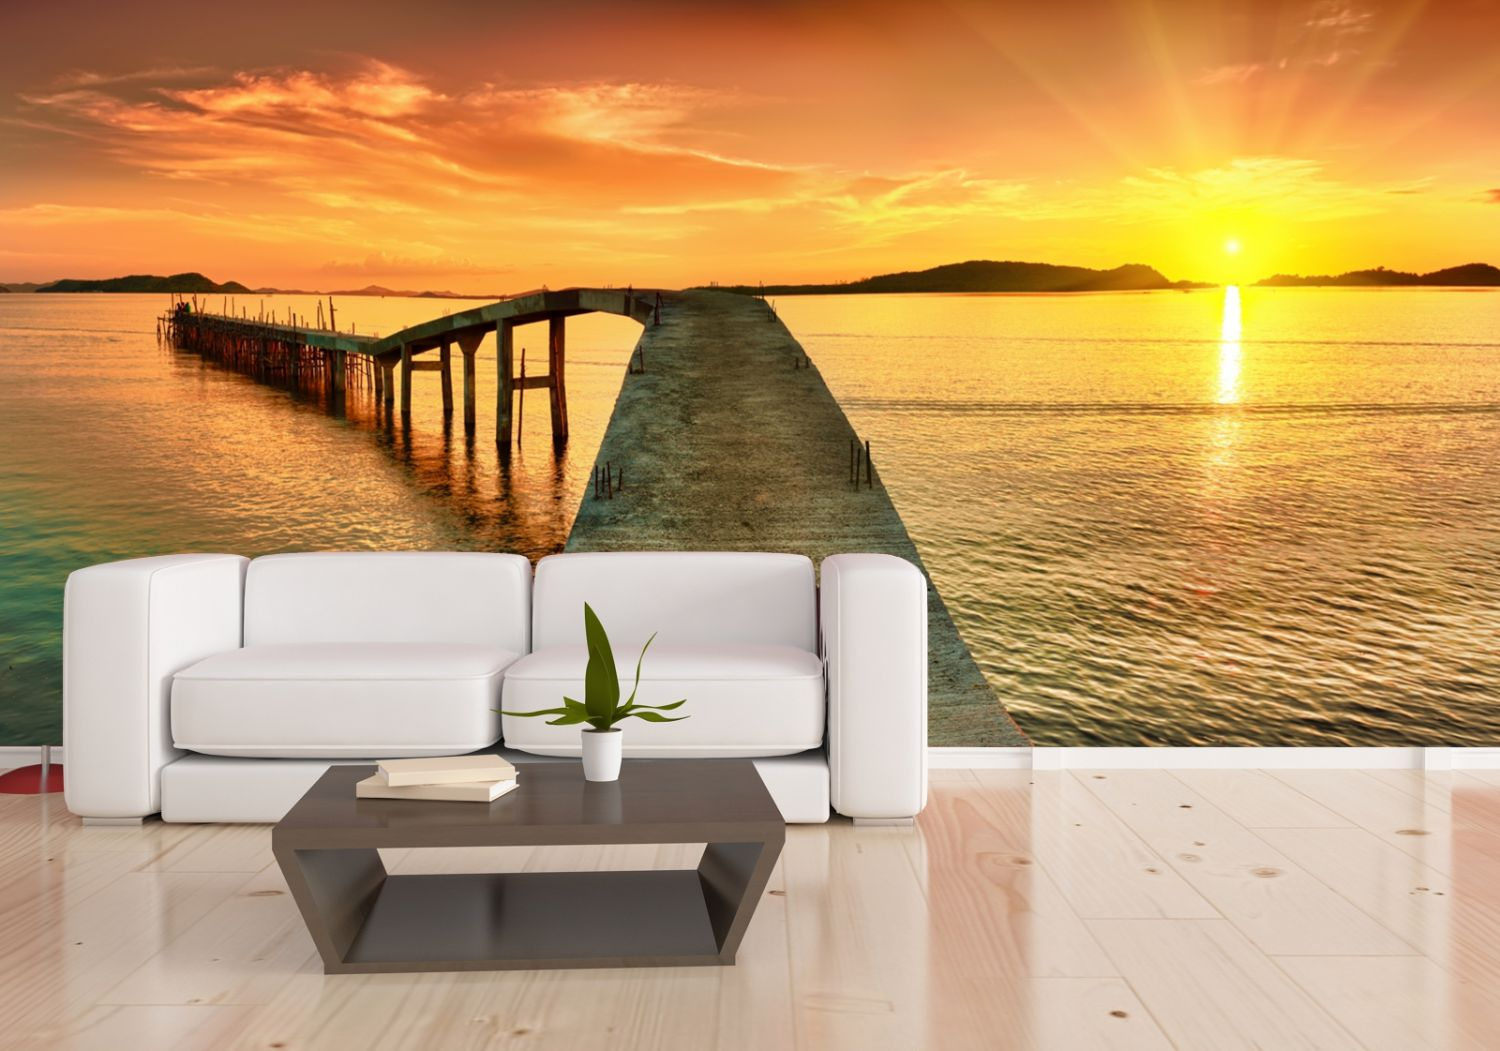 xxl poster fototapete wandtapete vlies natur karibik steg in den sonnenuntergan ebay. Black Bedroom Furniture Sets. Home Design Ideas